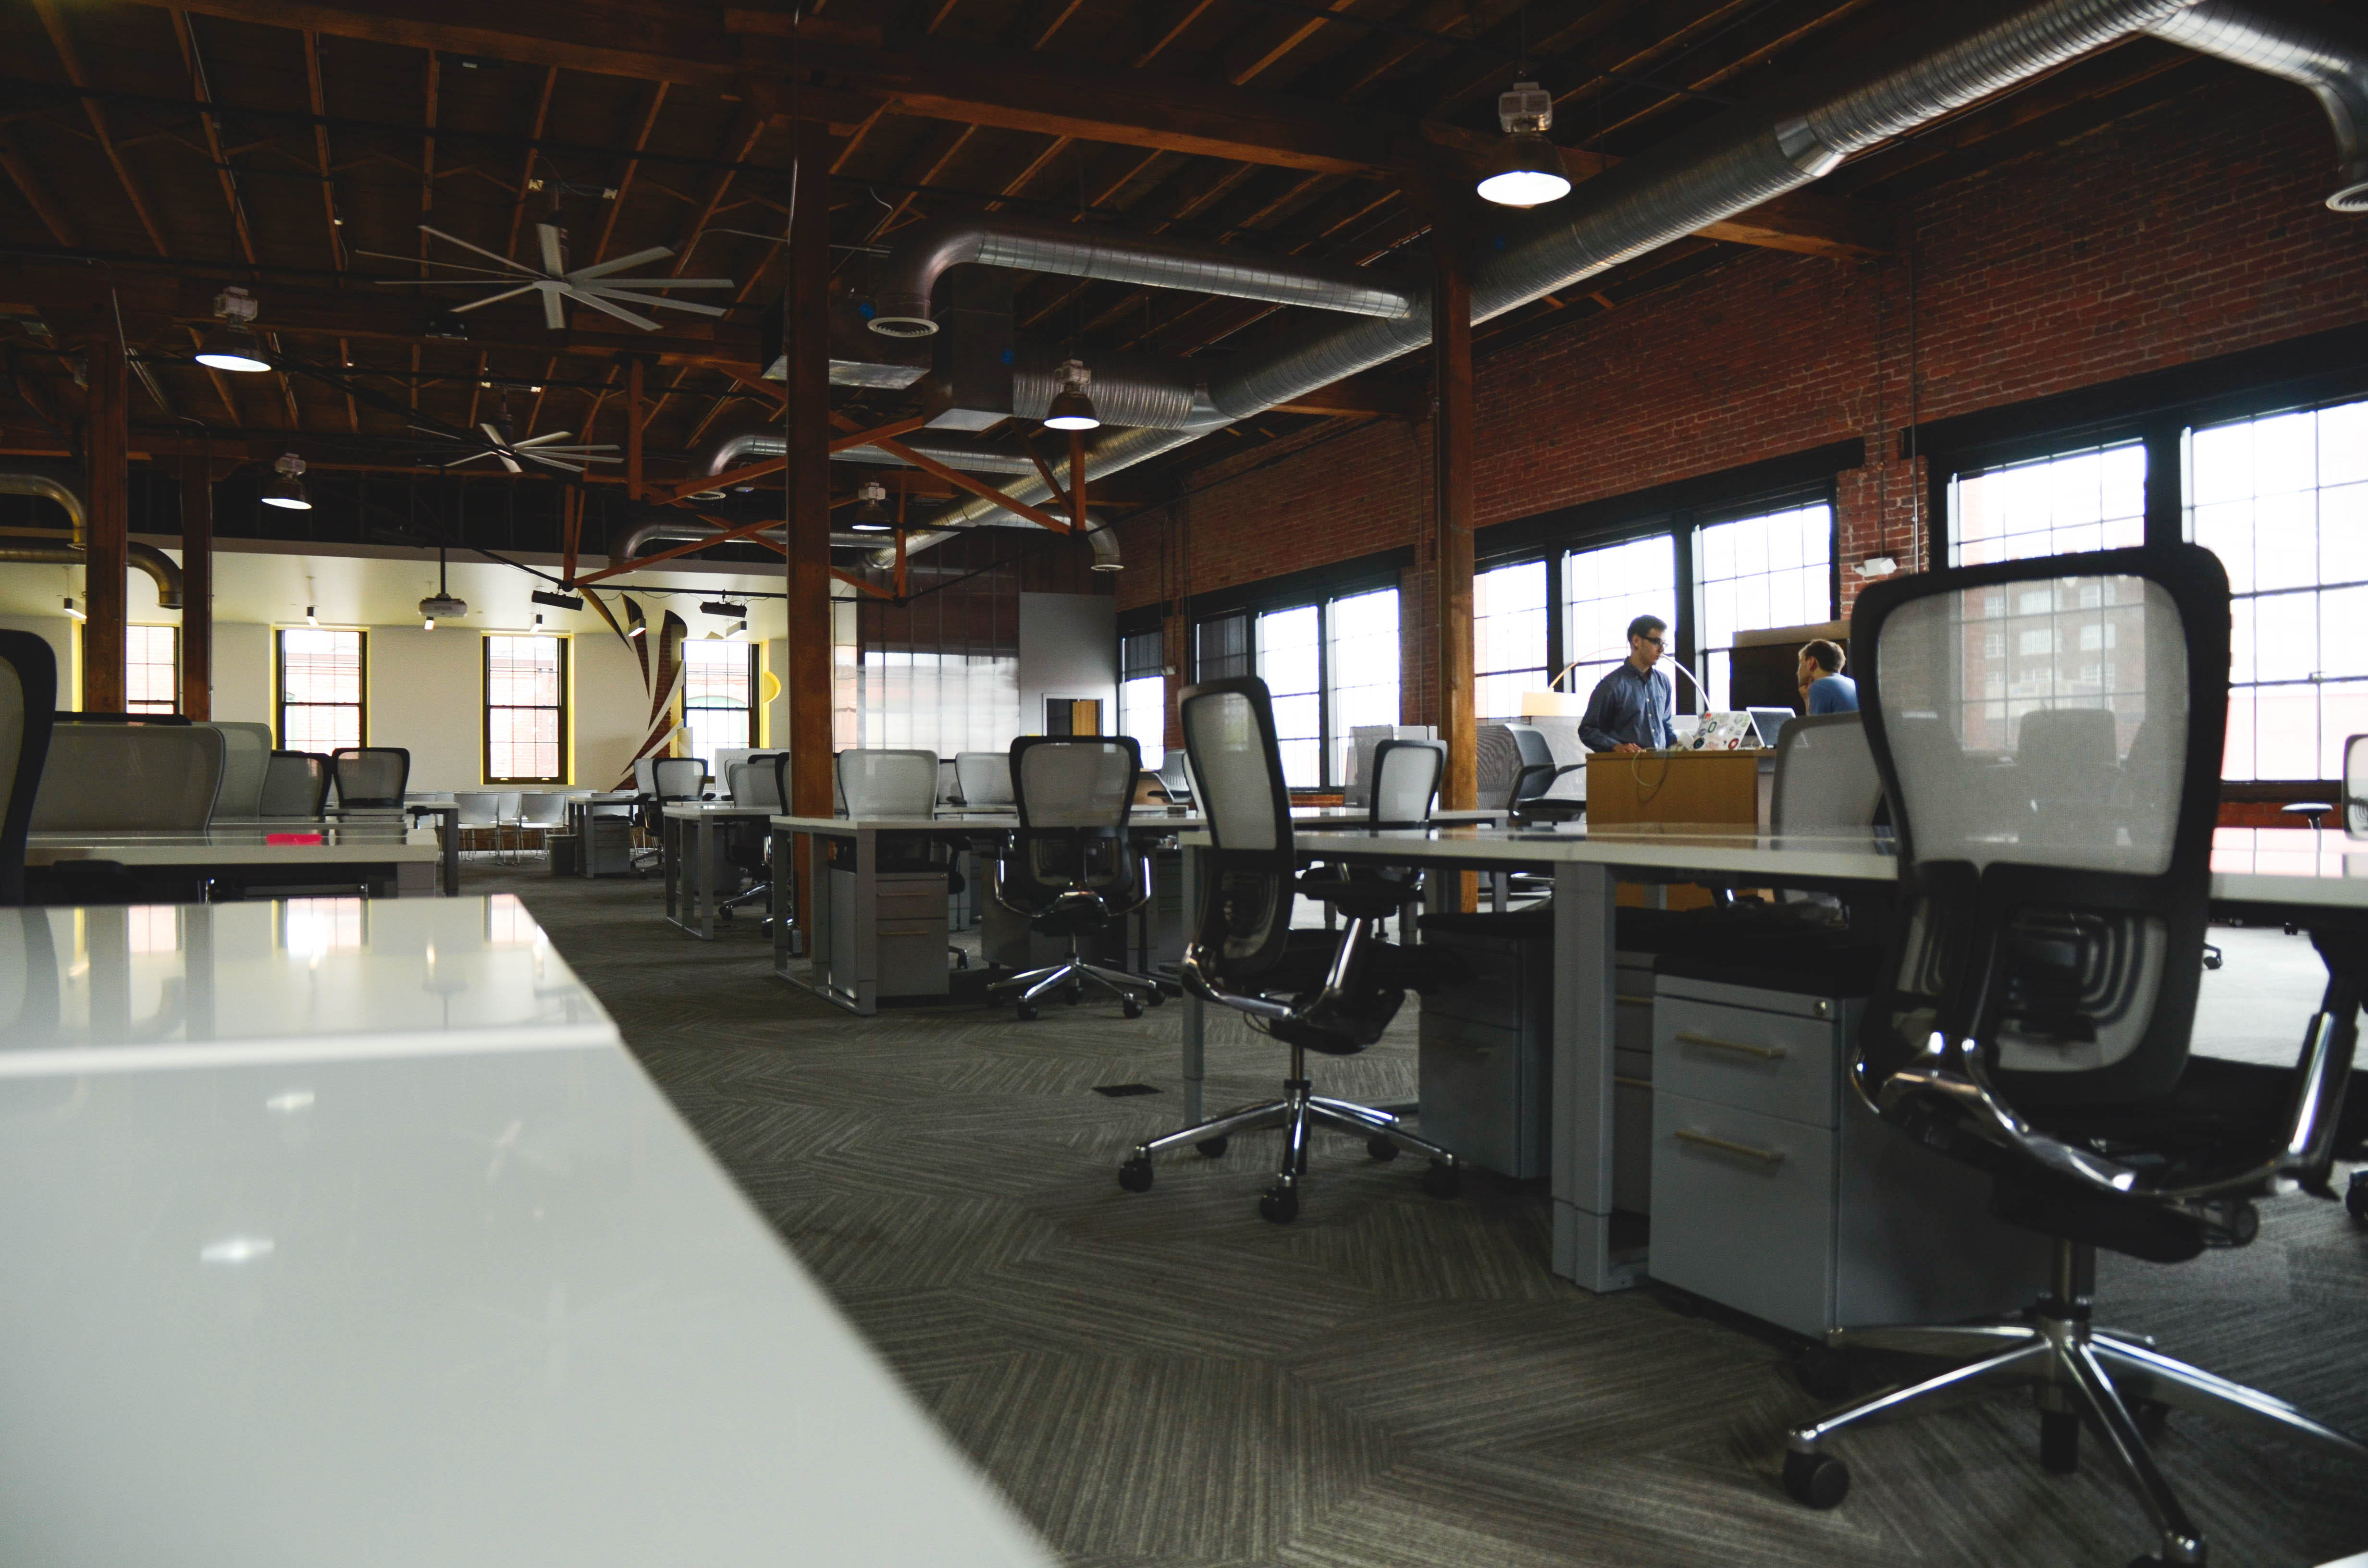 09 Nov Will An Office Workspace Makeover Boost Employee Productivity?